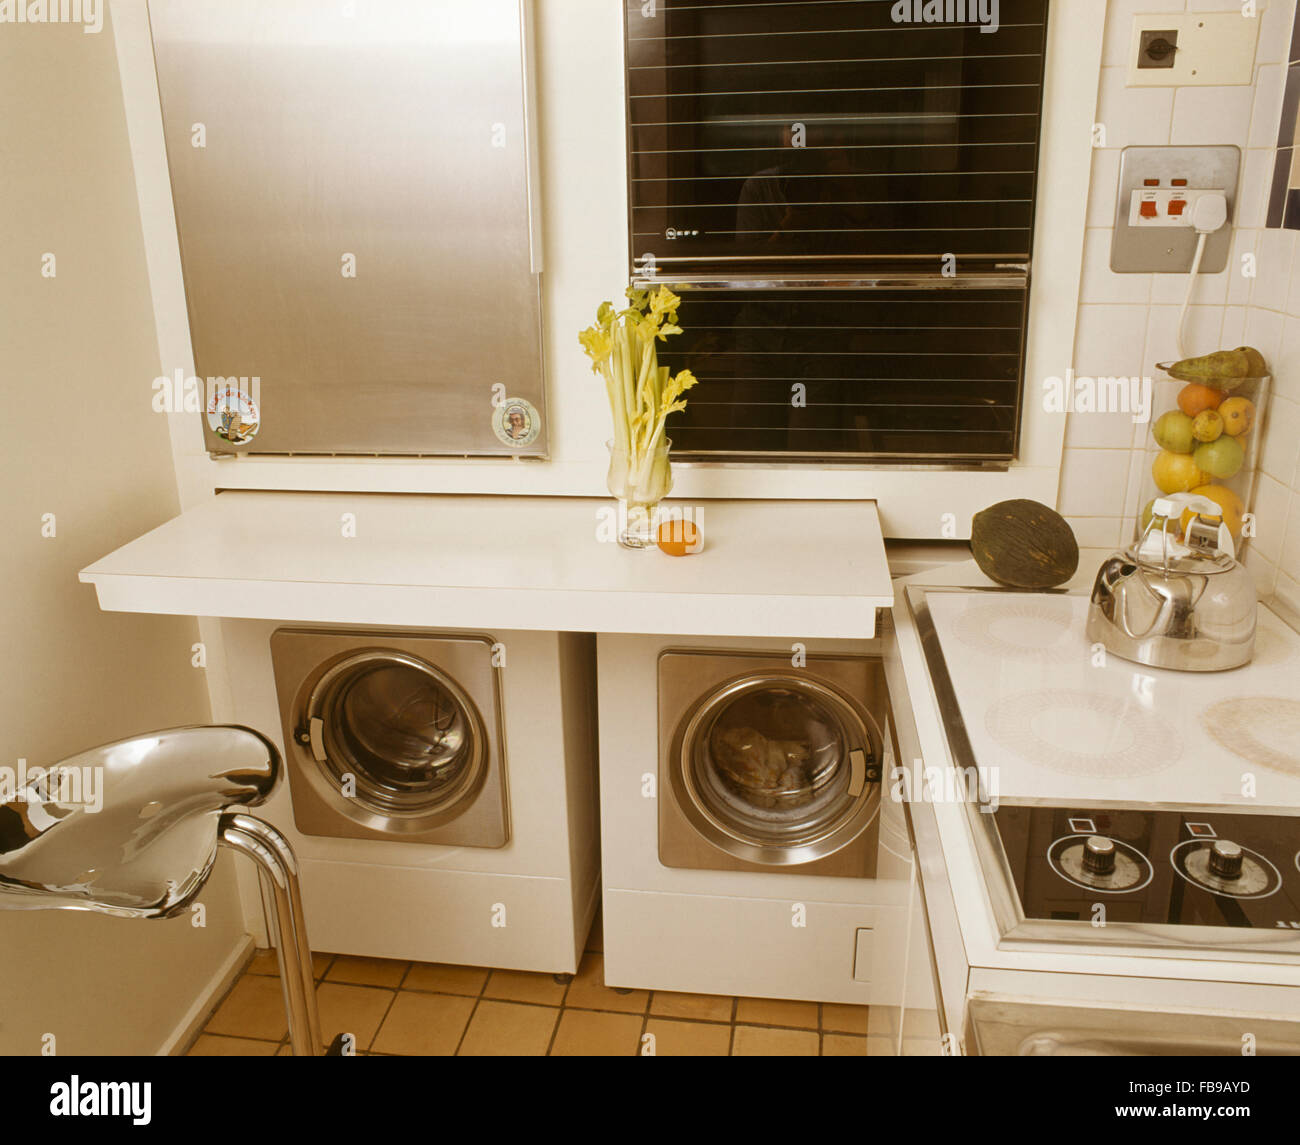 retro washing machine photos retro washing machine images alamy. Black Bedroom Furniture Sets. Home Design Ideas